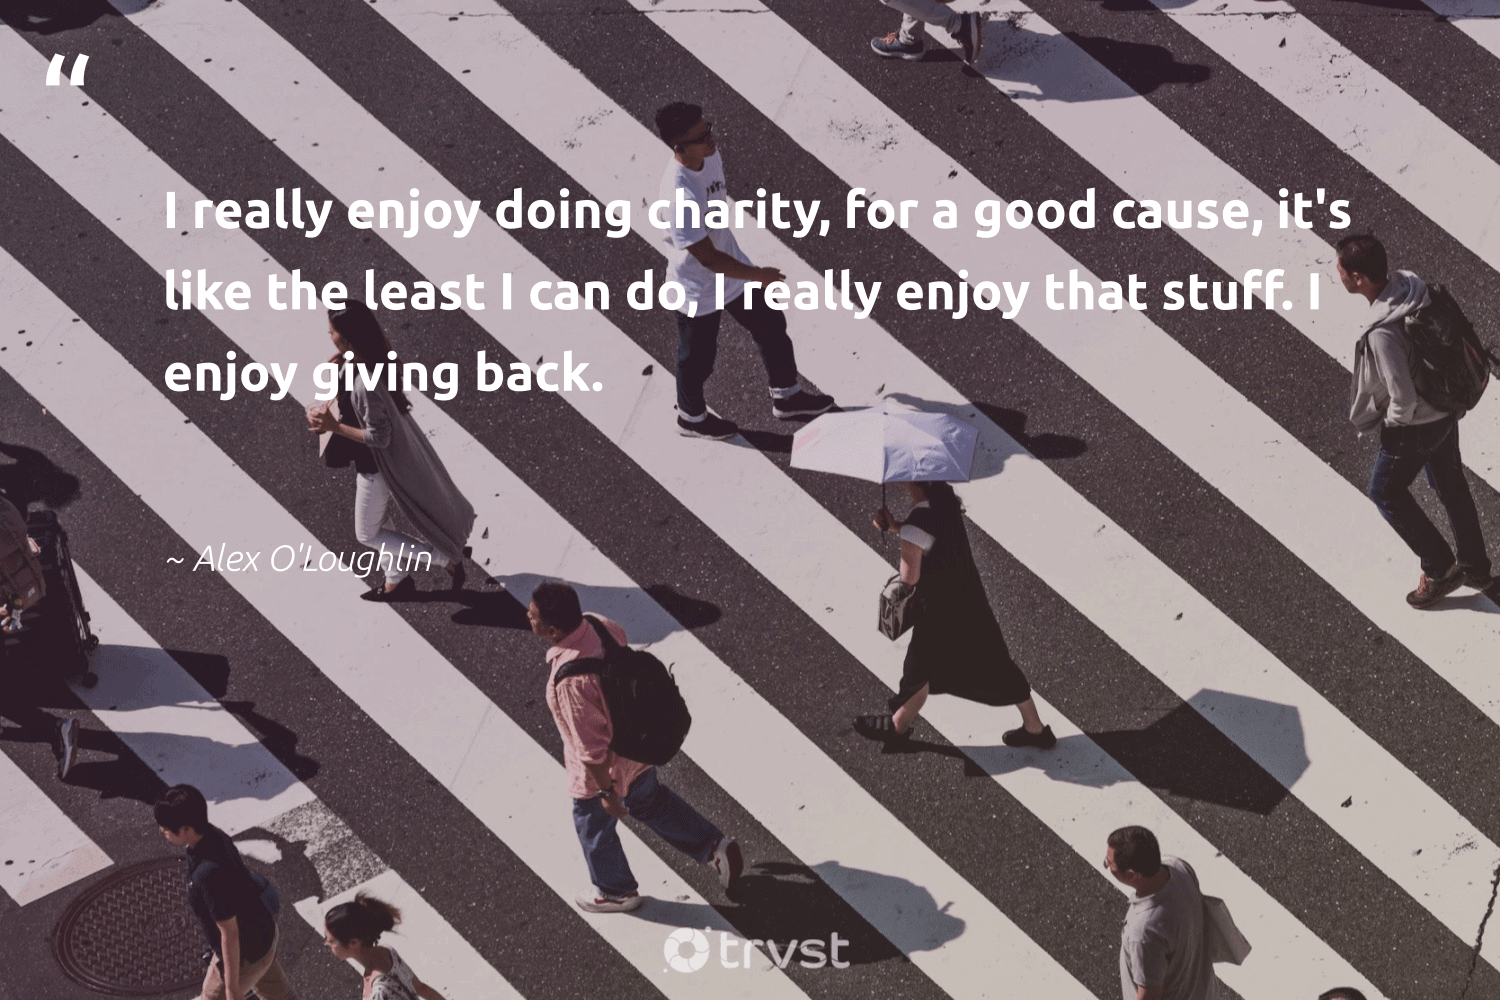 """""""I really enjoy doing charity, for a good cause, it's like the least I can do, I really enjoy that stuff. I enjoy giving back.""""  - Alex O'Loughlin #trvst #quotes #cause #givingback #giveback #NGO #makeadifference #giveforthefuture #thinkgreen #dogood #fundraising #socialchange"""